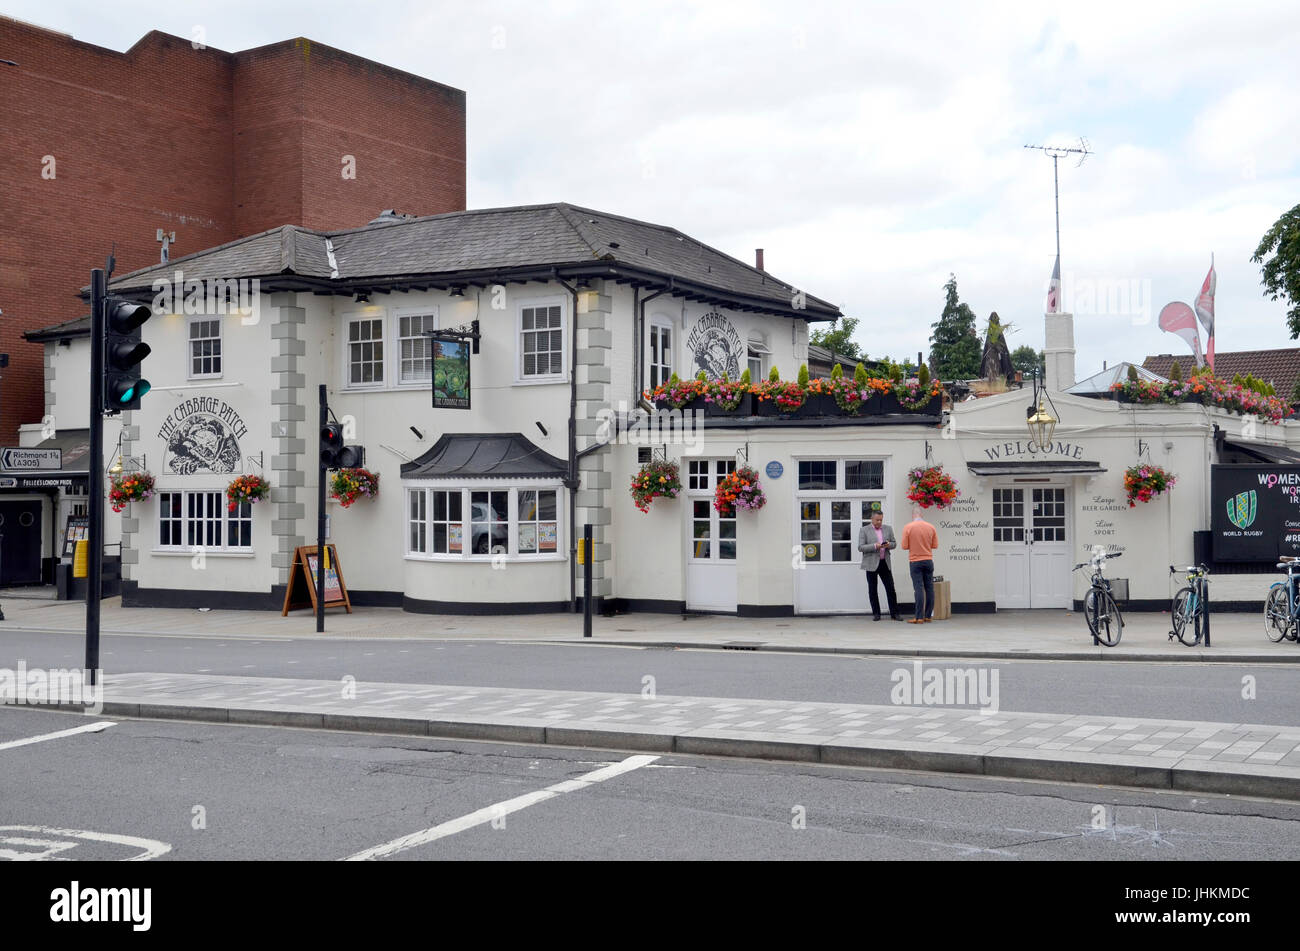 The Cabbage Patch public house in Twickenham, London - Stock Image